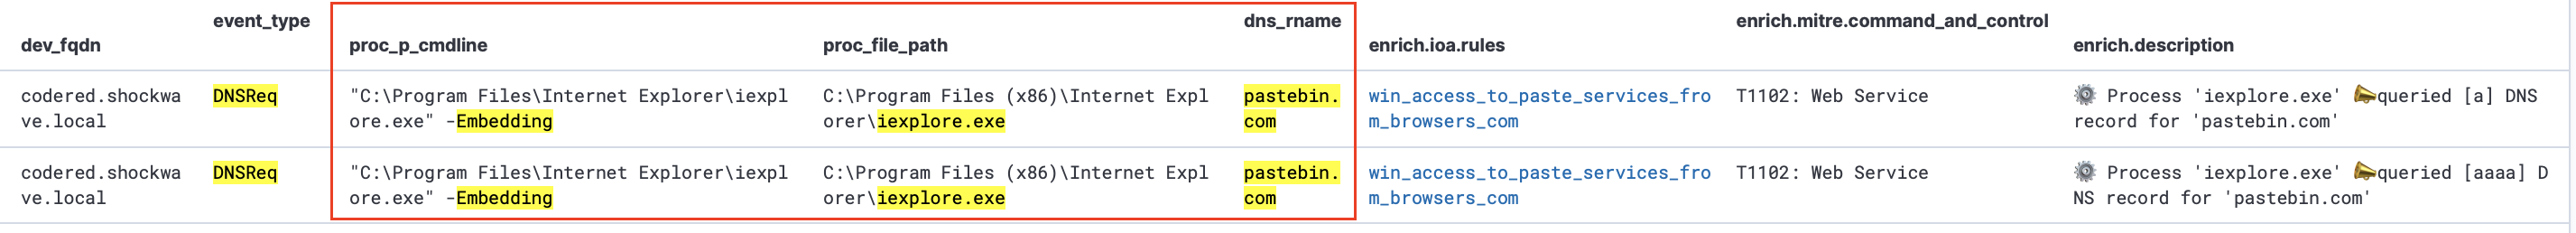 Fig. 6. Access to Paste services (pastebin, etc.) not from browsers, but also from browser COM objects